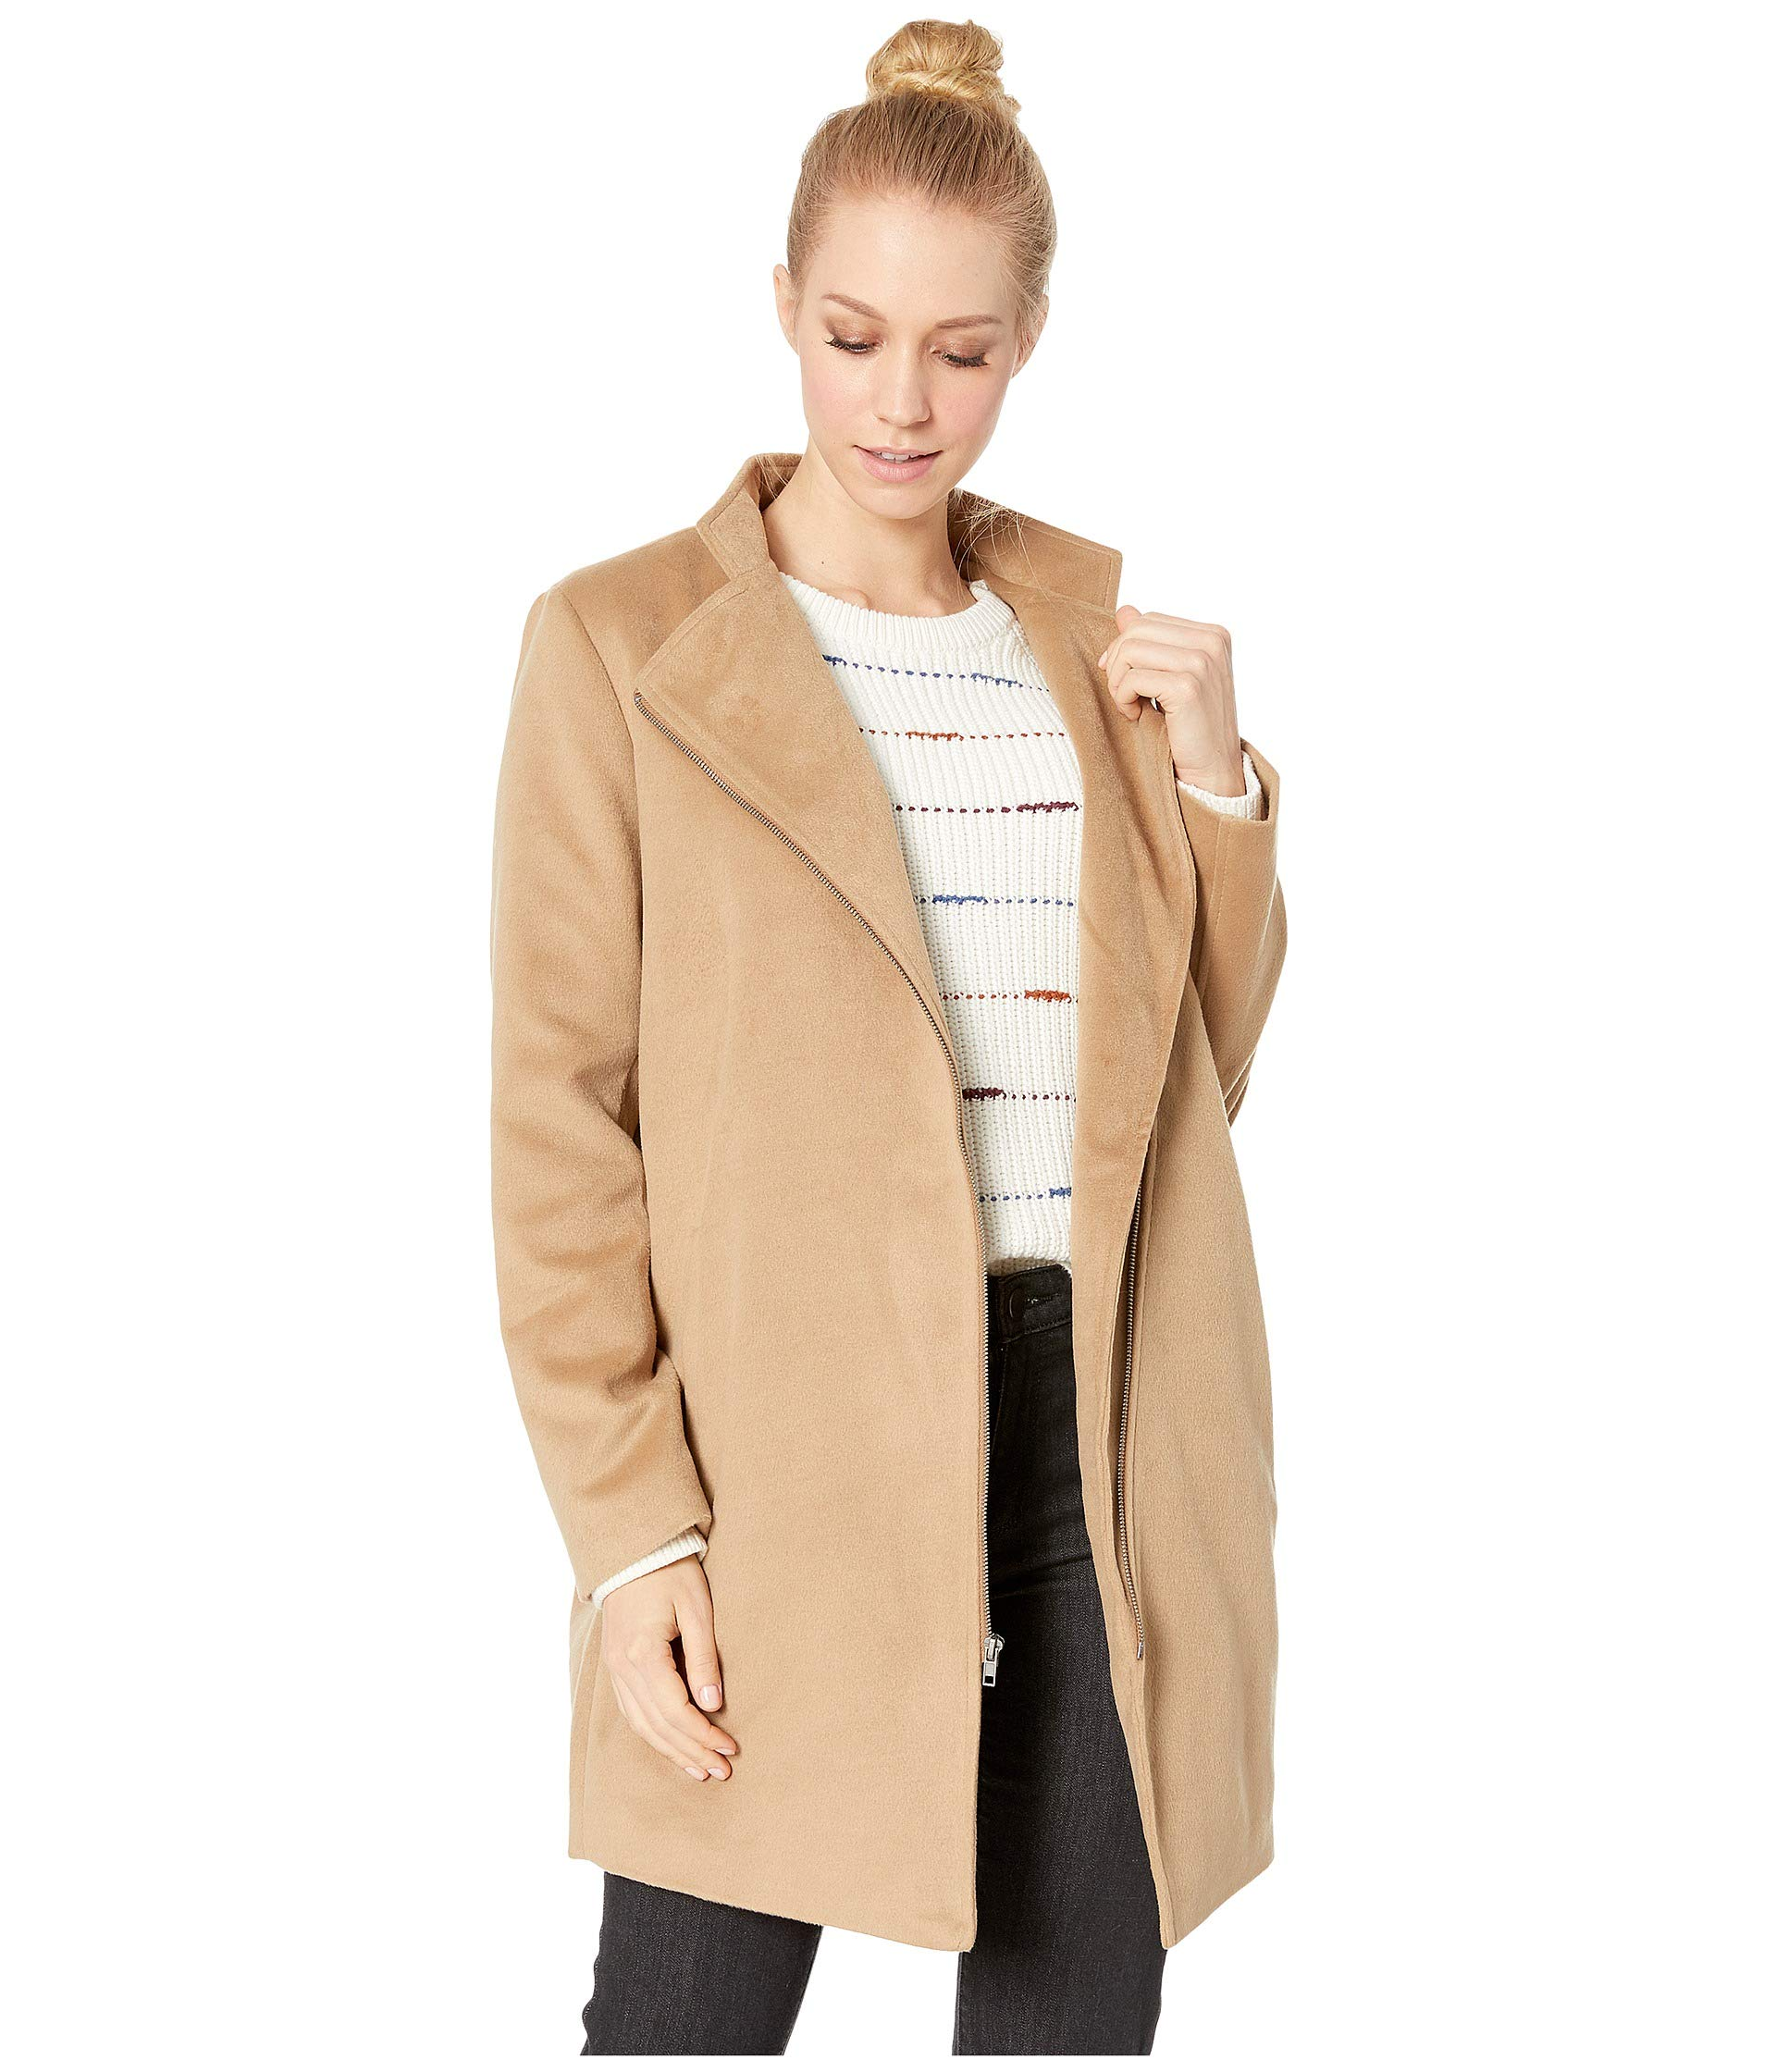 Jack Coat Dakota To Melton My By Camel Heart Zip Bb rIw8rExg